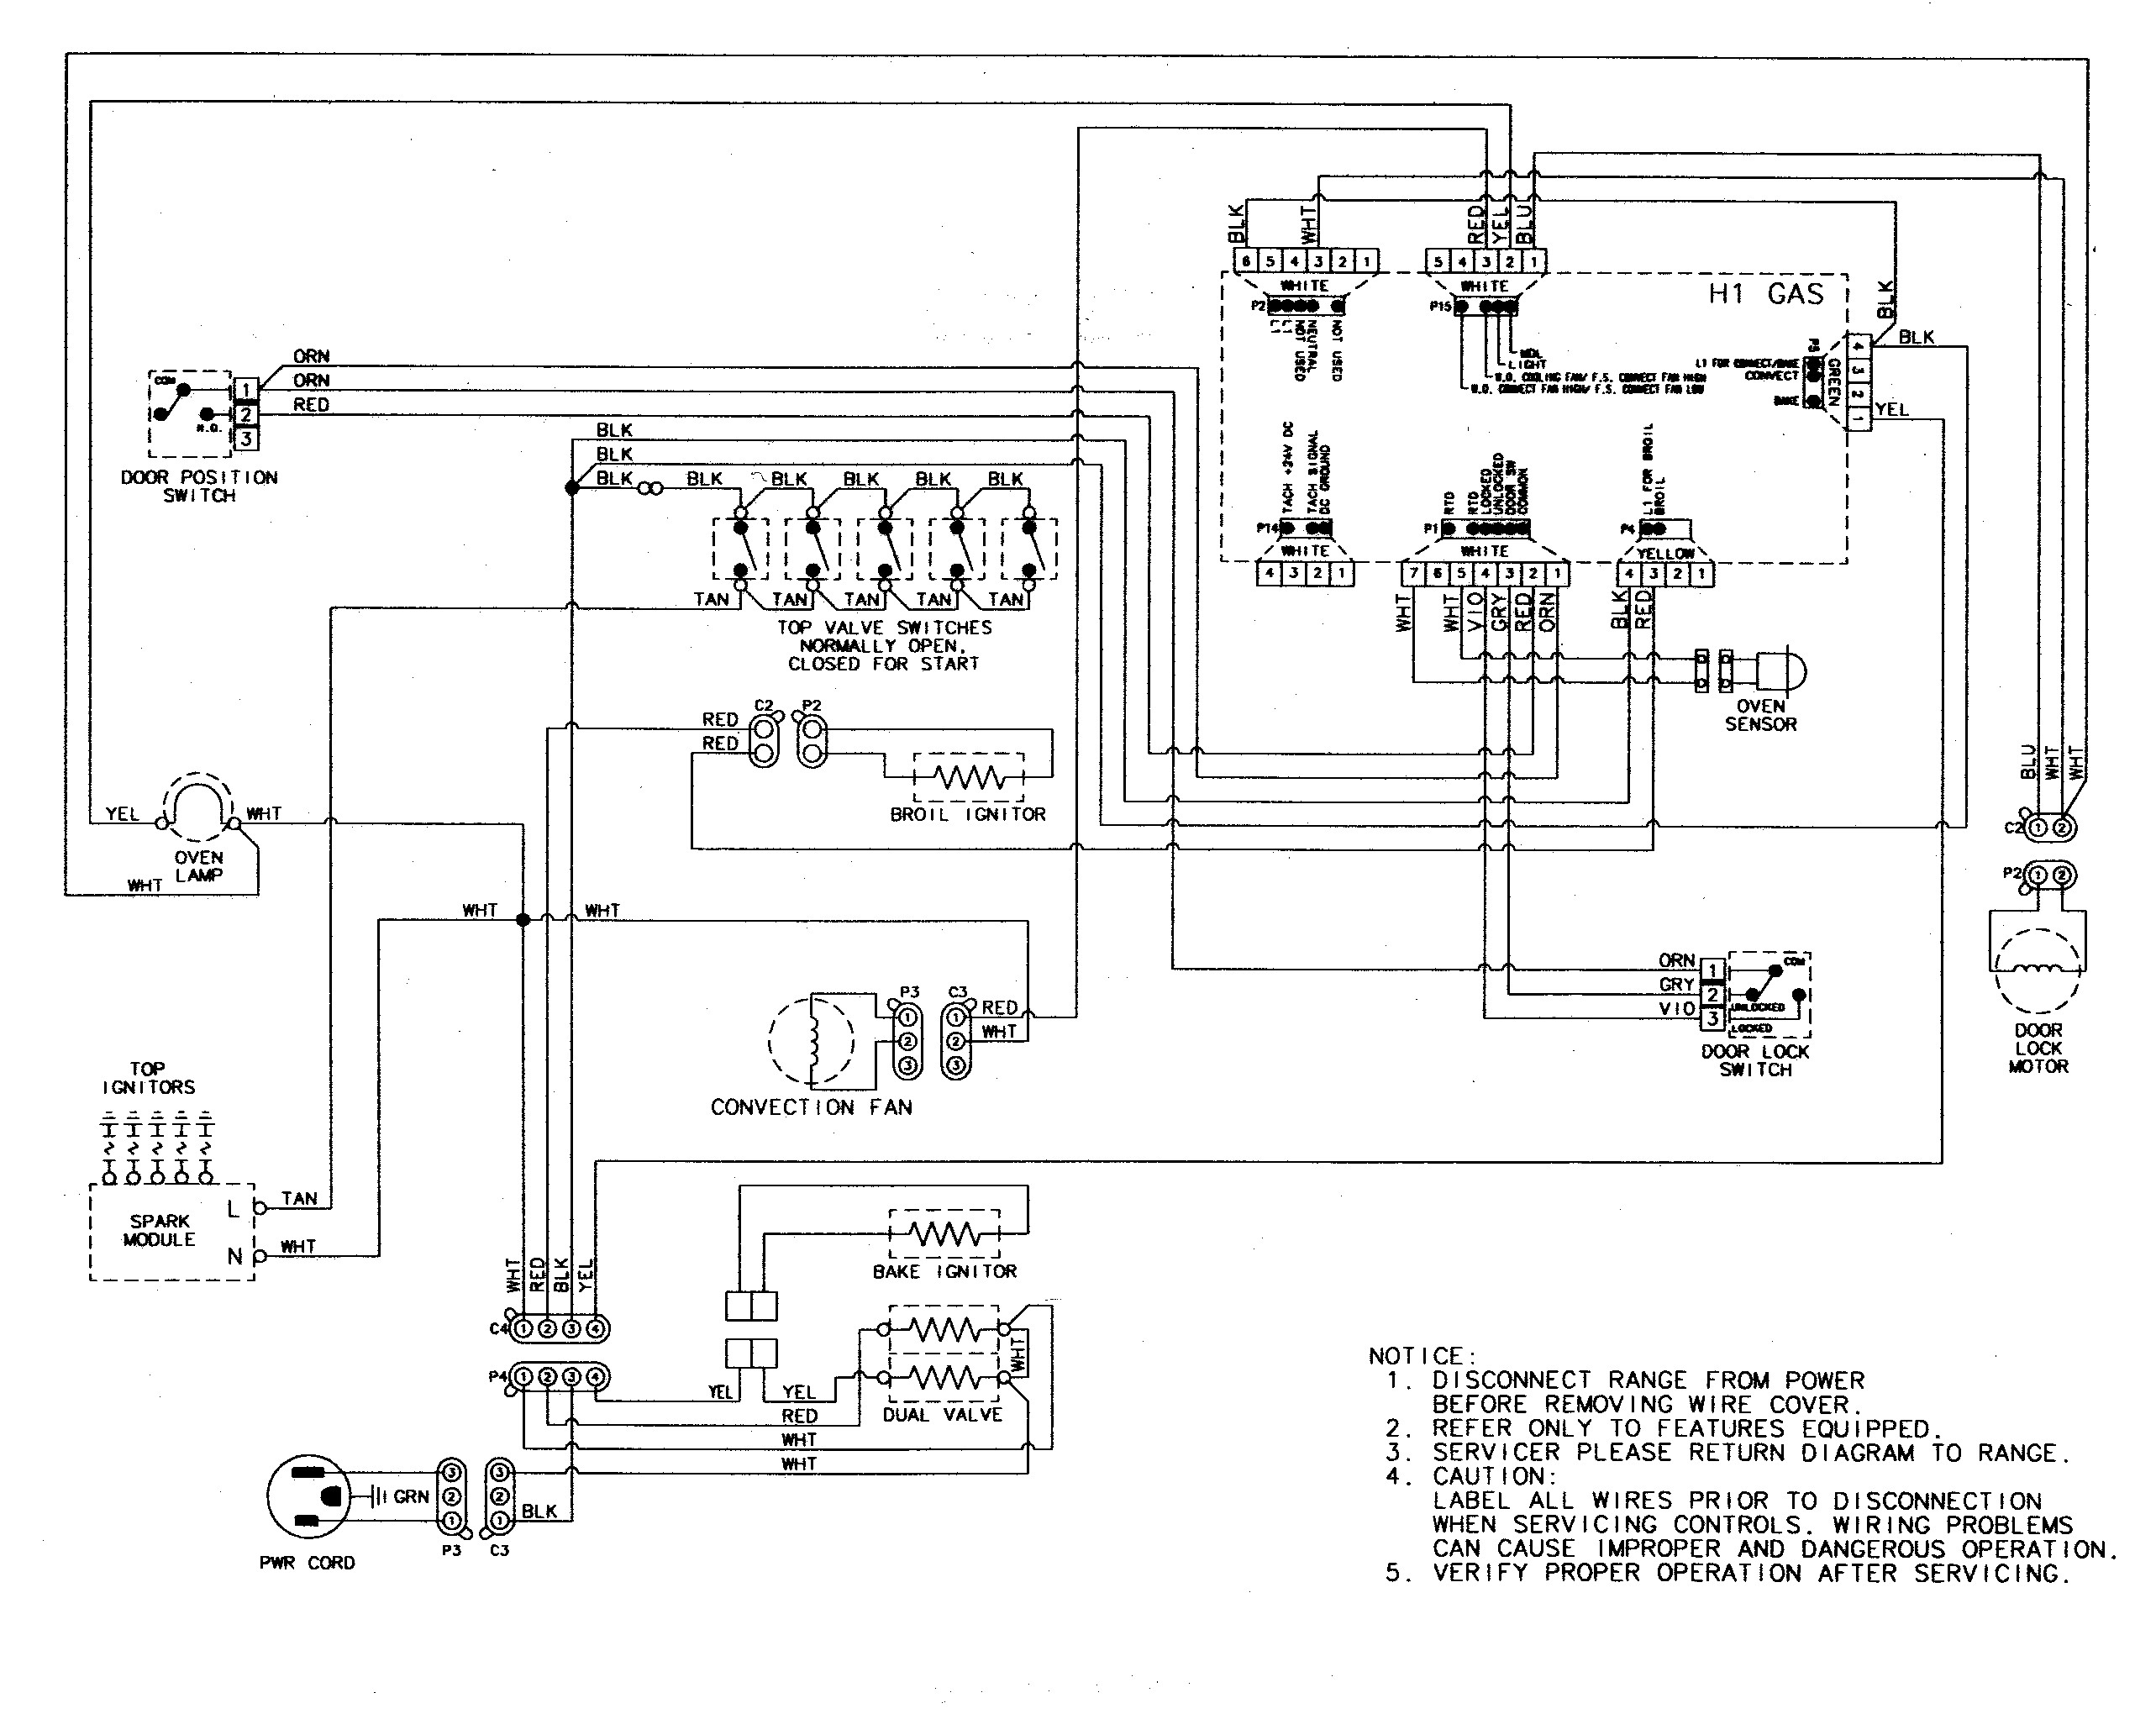 whirlpool electric dryer wiring diagram Collection-Wiring Diagram Ge Dryer Valid Wiring Diagram Whirlpool Gas Dryer Schematic for Simple Electric 15-j